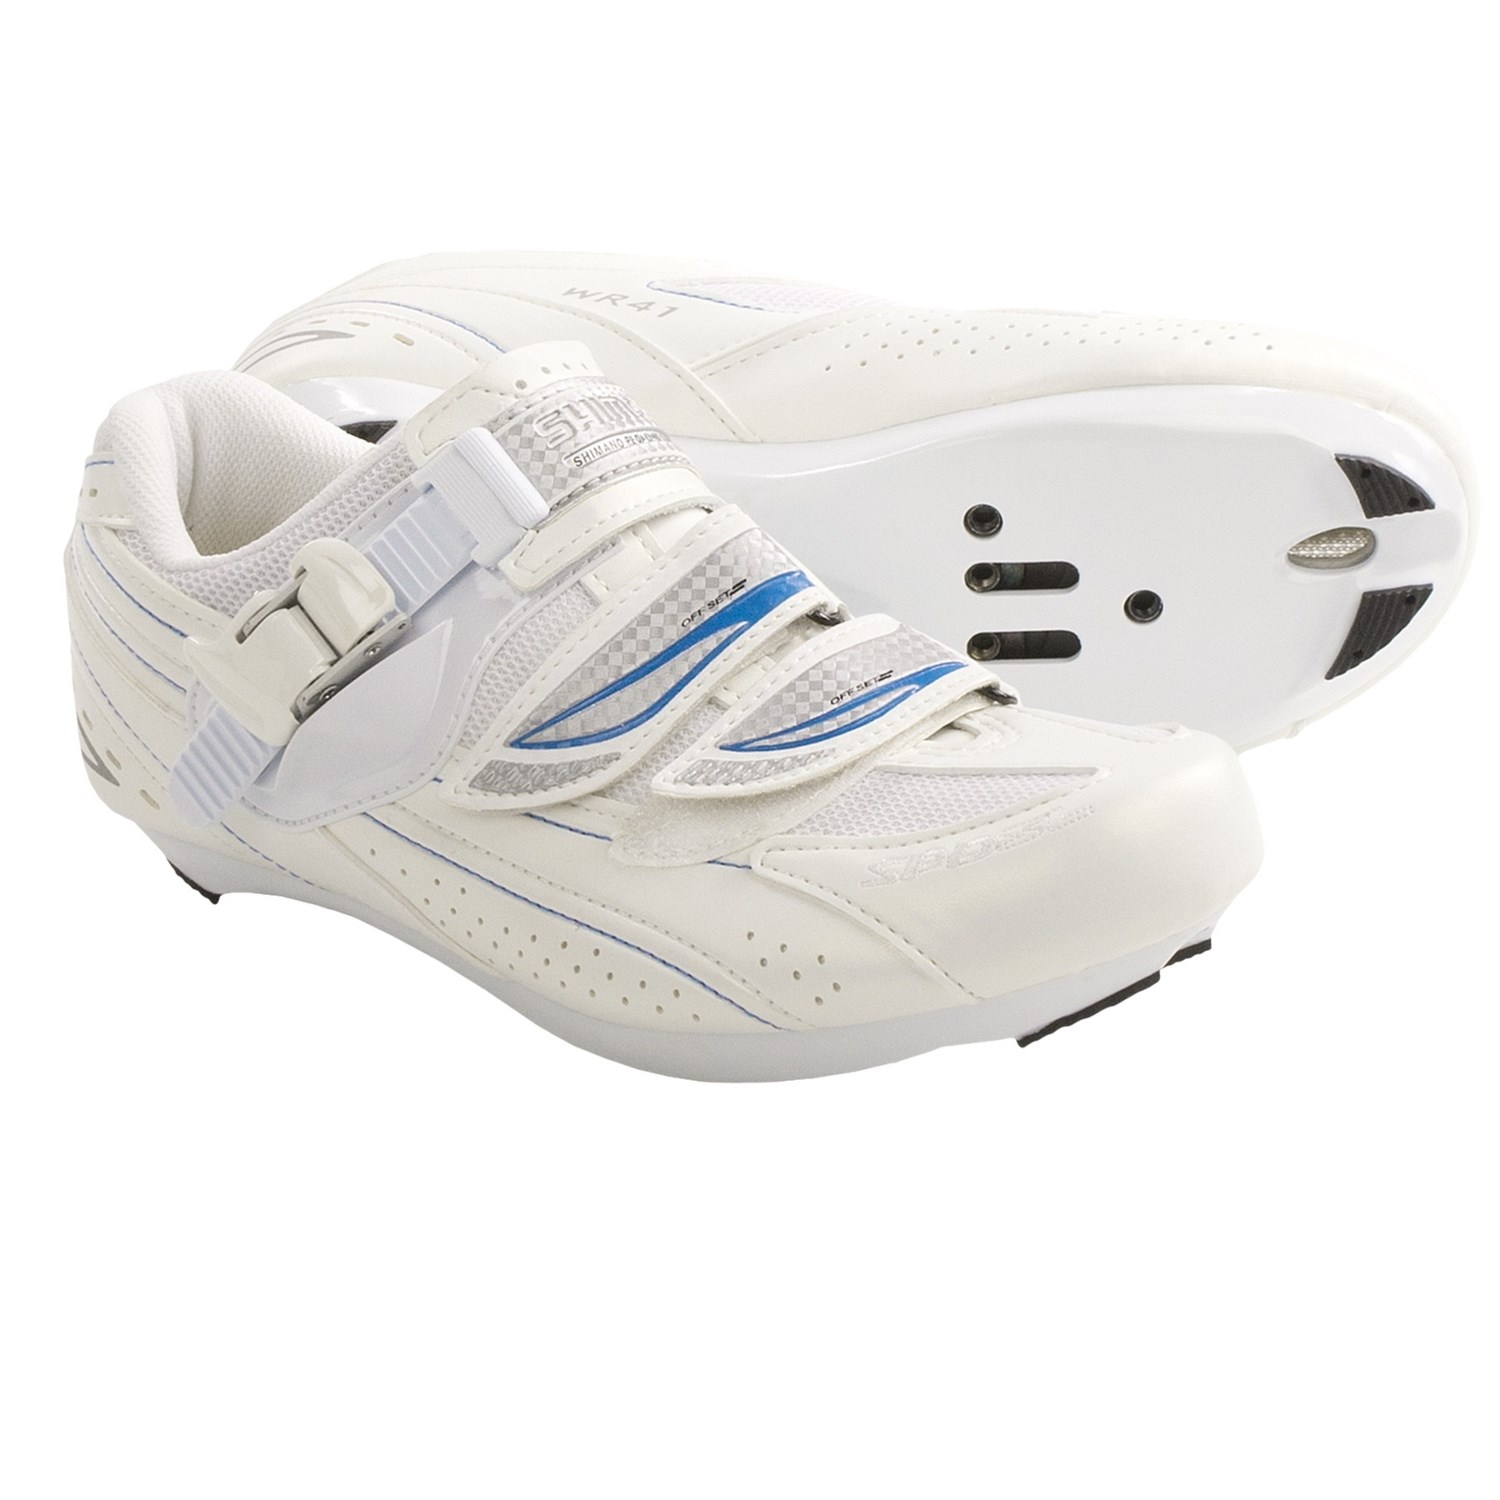 Serfas Women's Rocket Indoor Cycling/Spinning Shoes